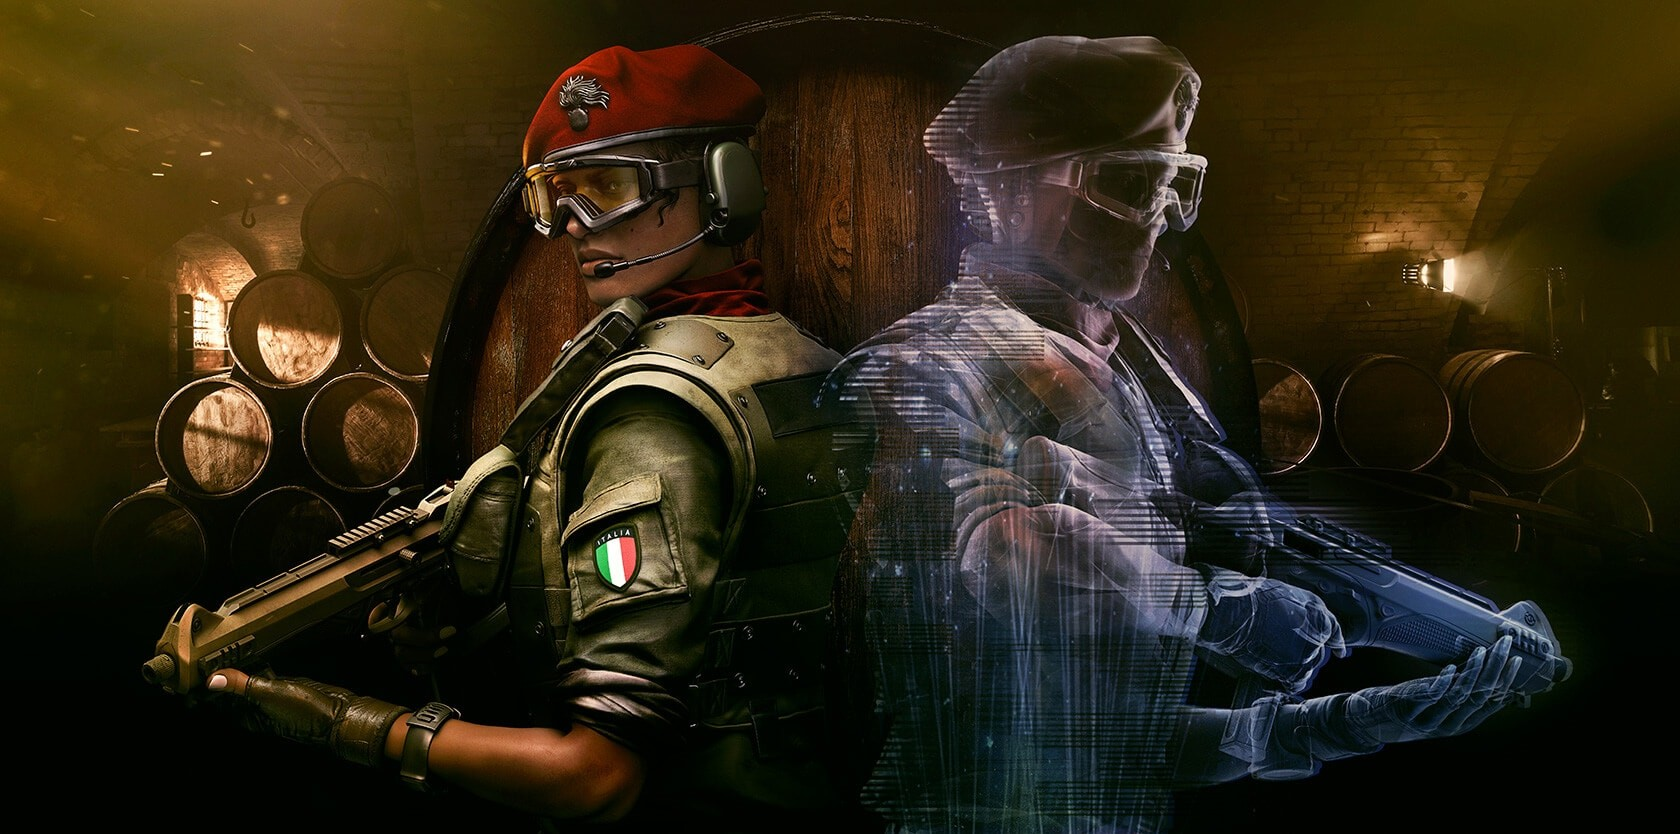 Rainbow Six Siege gets Xbox One X and PS4 Pro enhancements with next